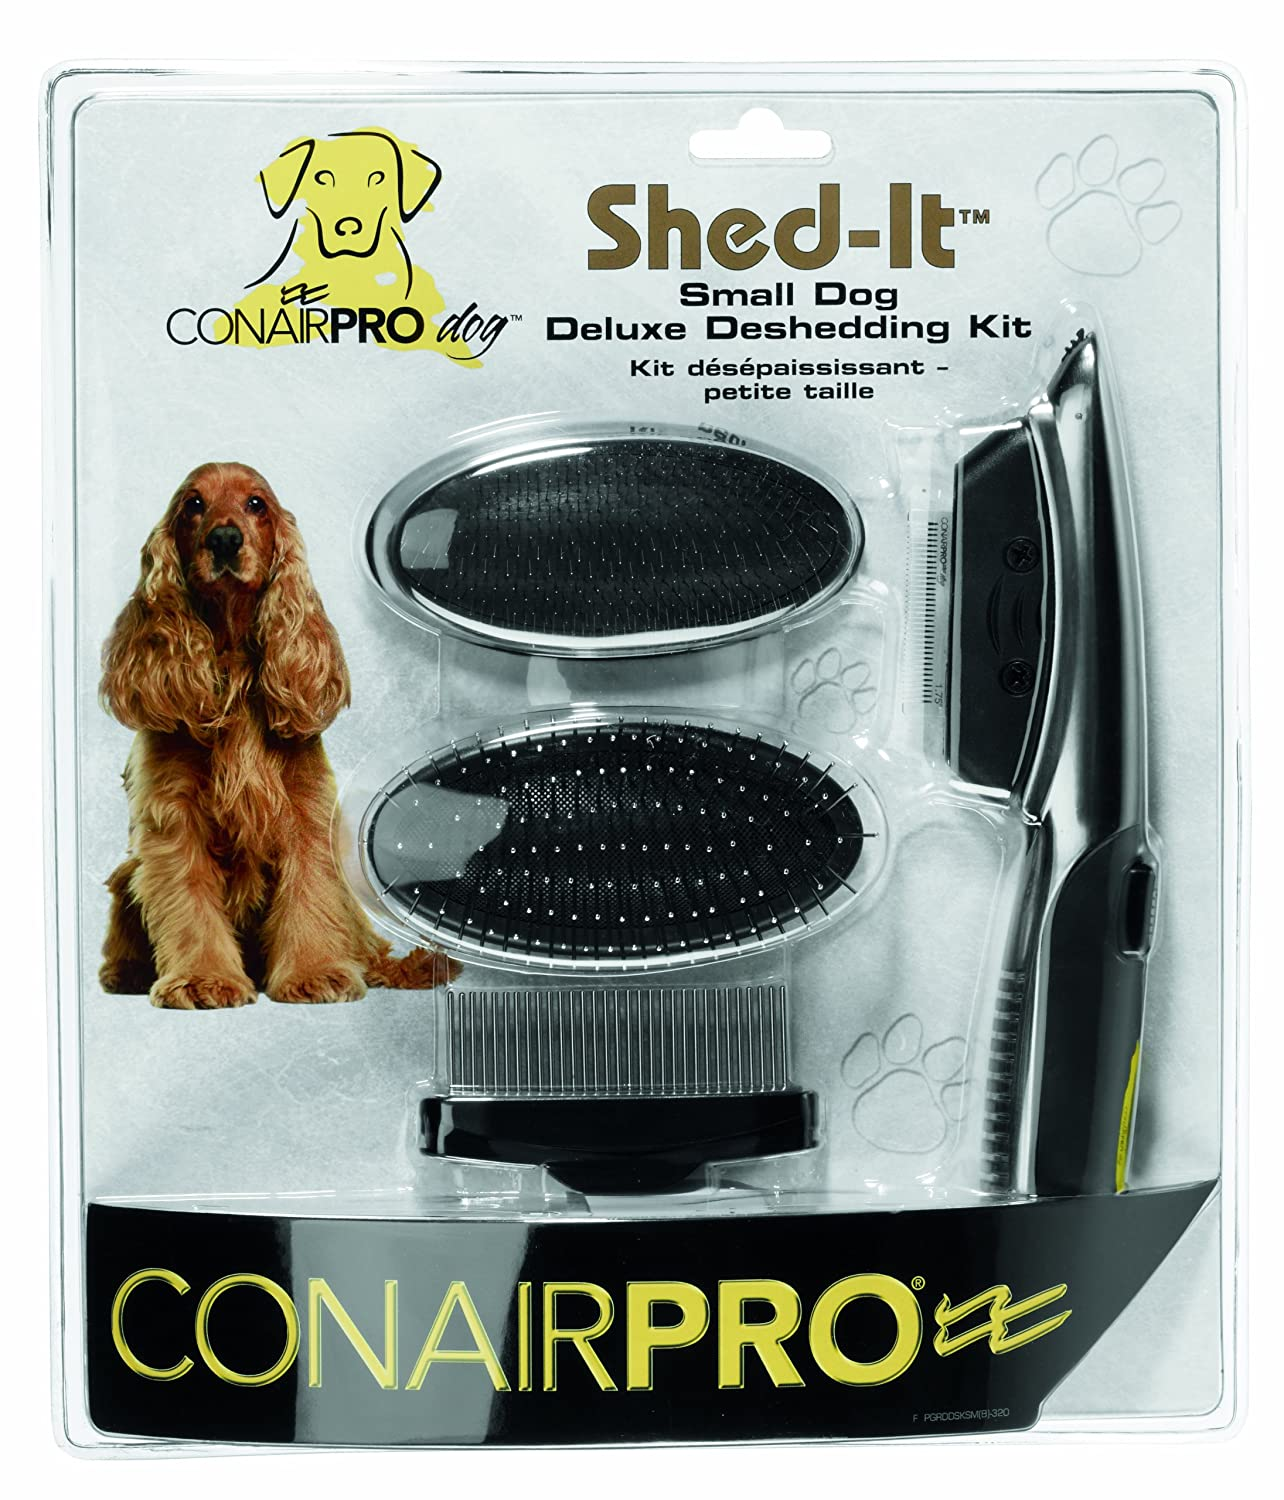 ConairPRO Dog Small Dog Deluxe Deshedding Kit